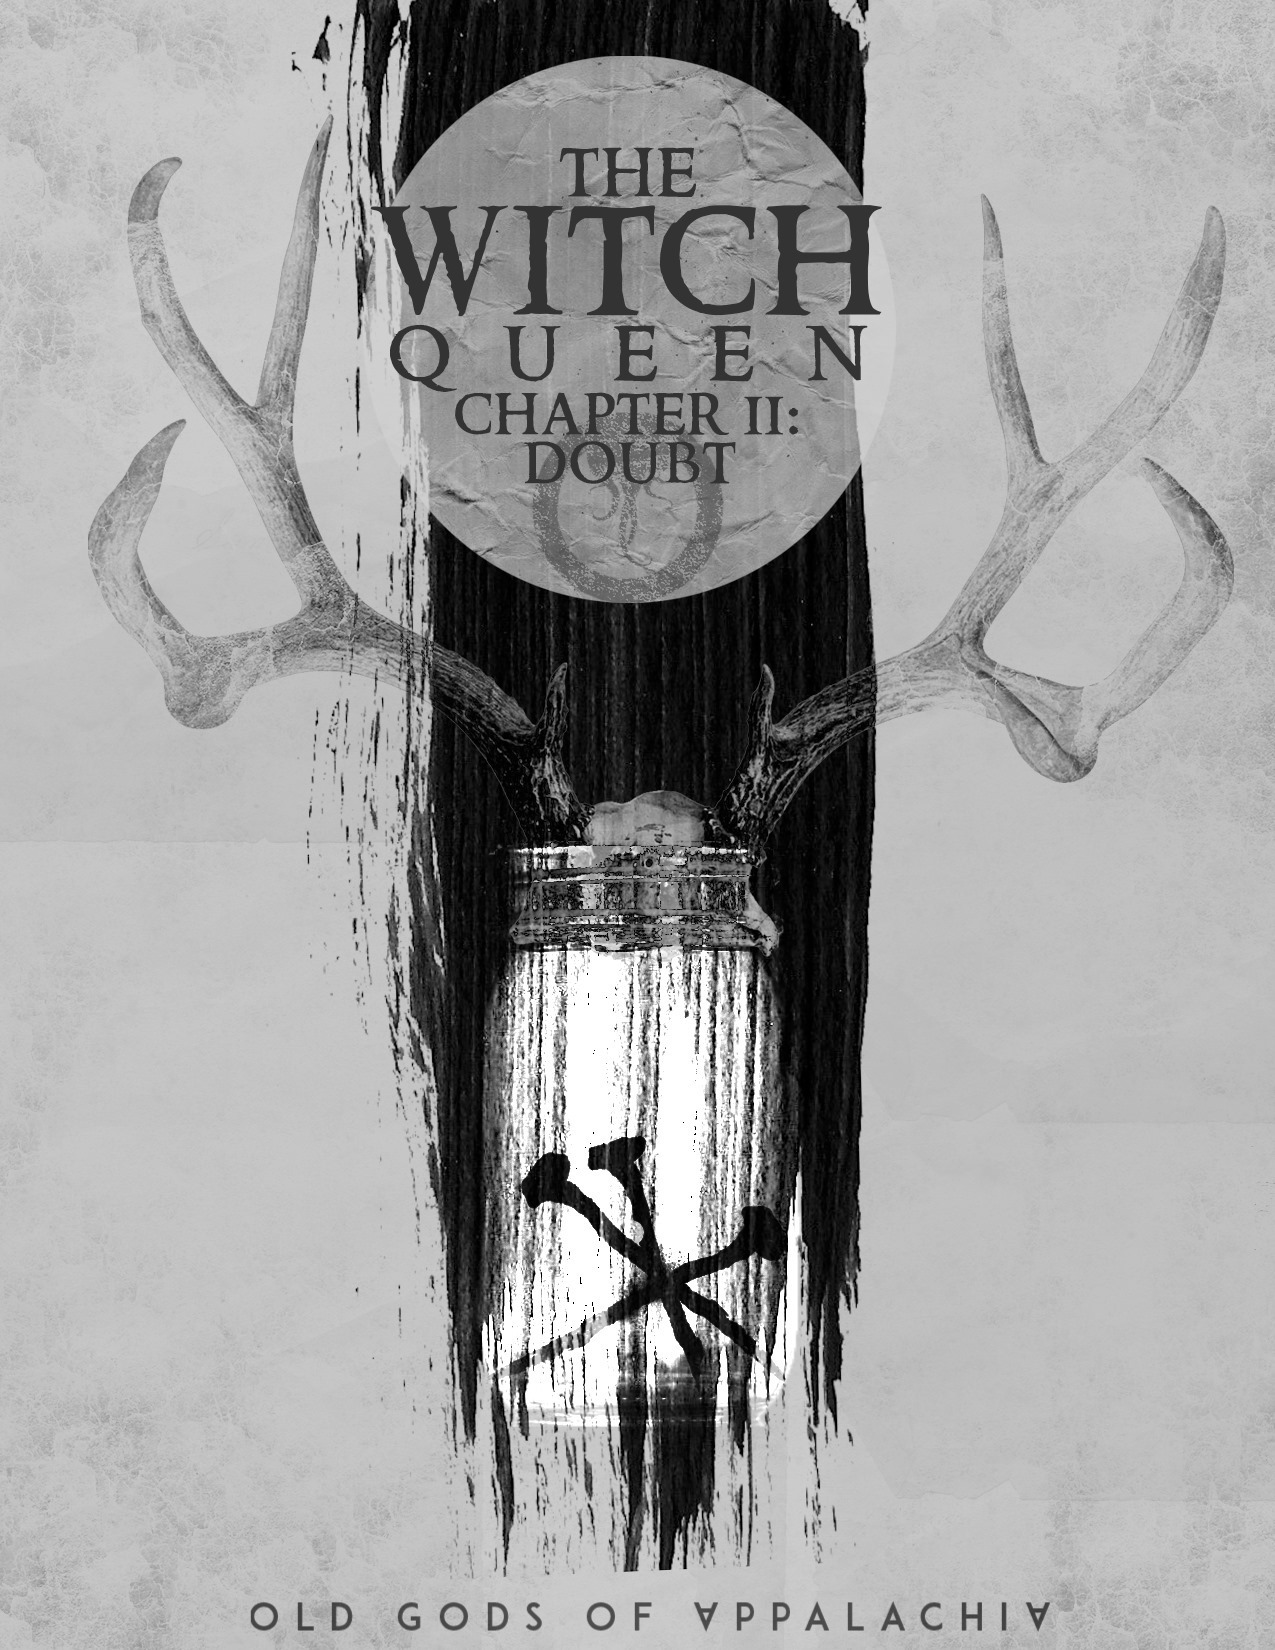 Episode 6: The Witch Queen Chapter II: Doubt Art